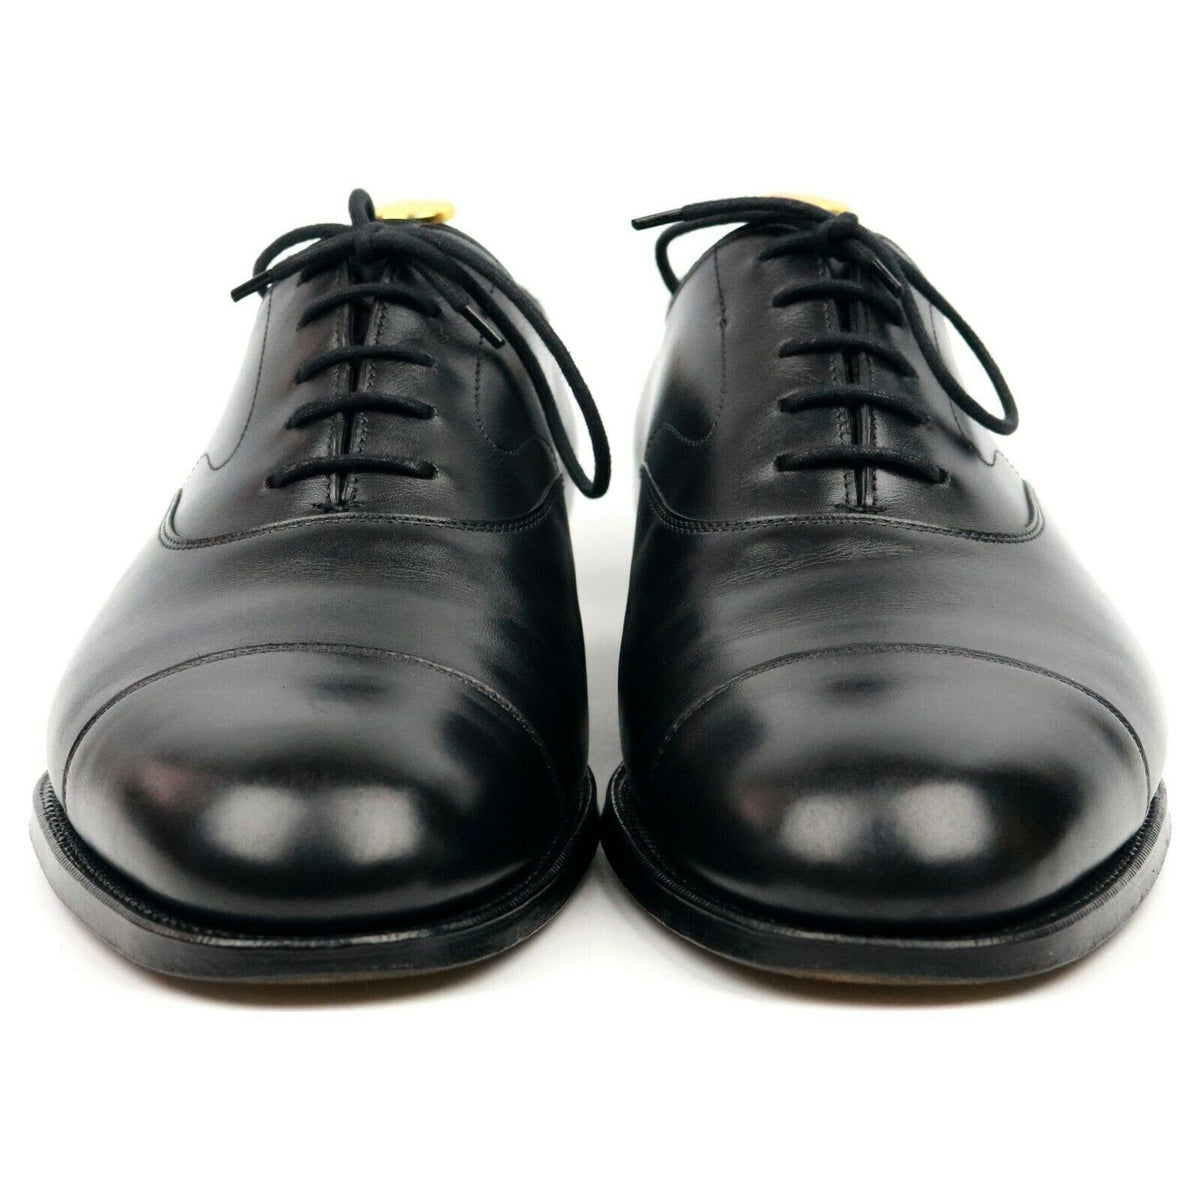 Edward Green 'Chelsea' Black Leather Oxford UK 9 E